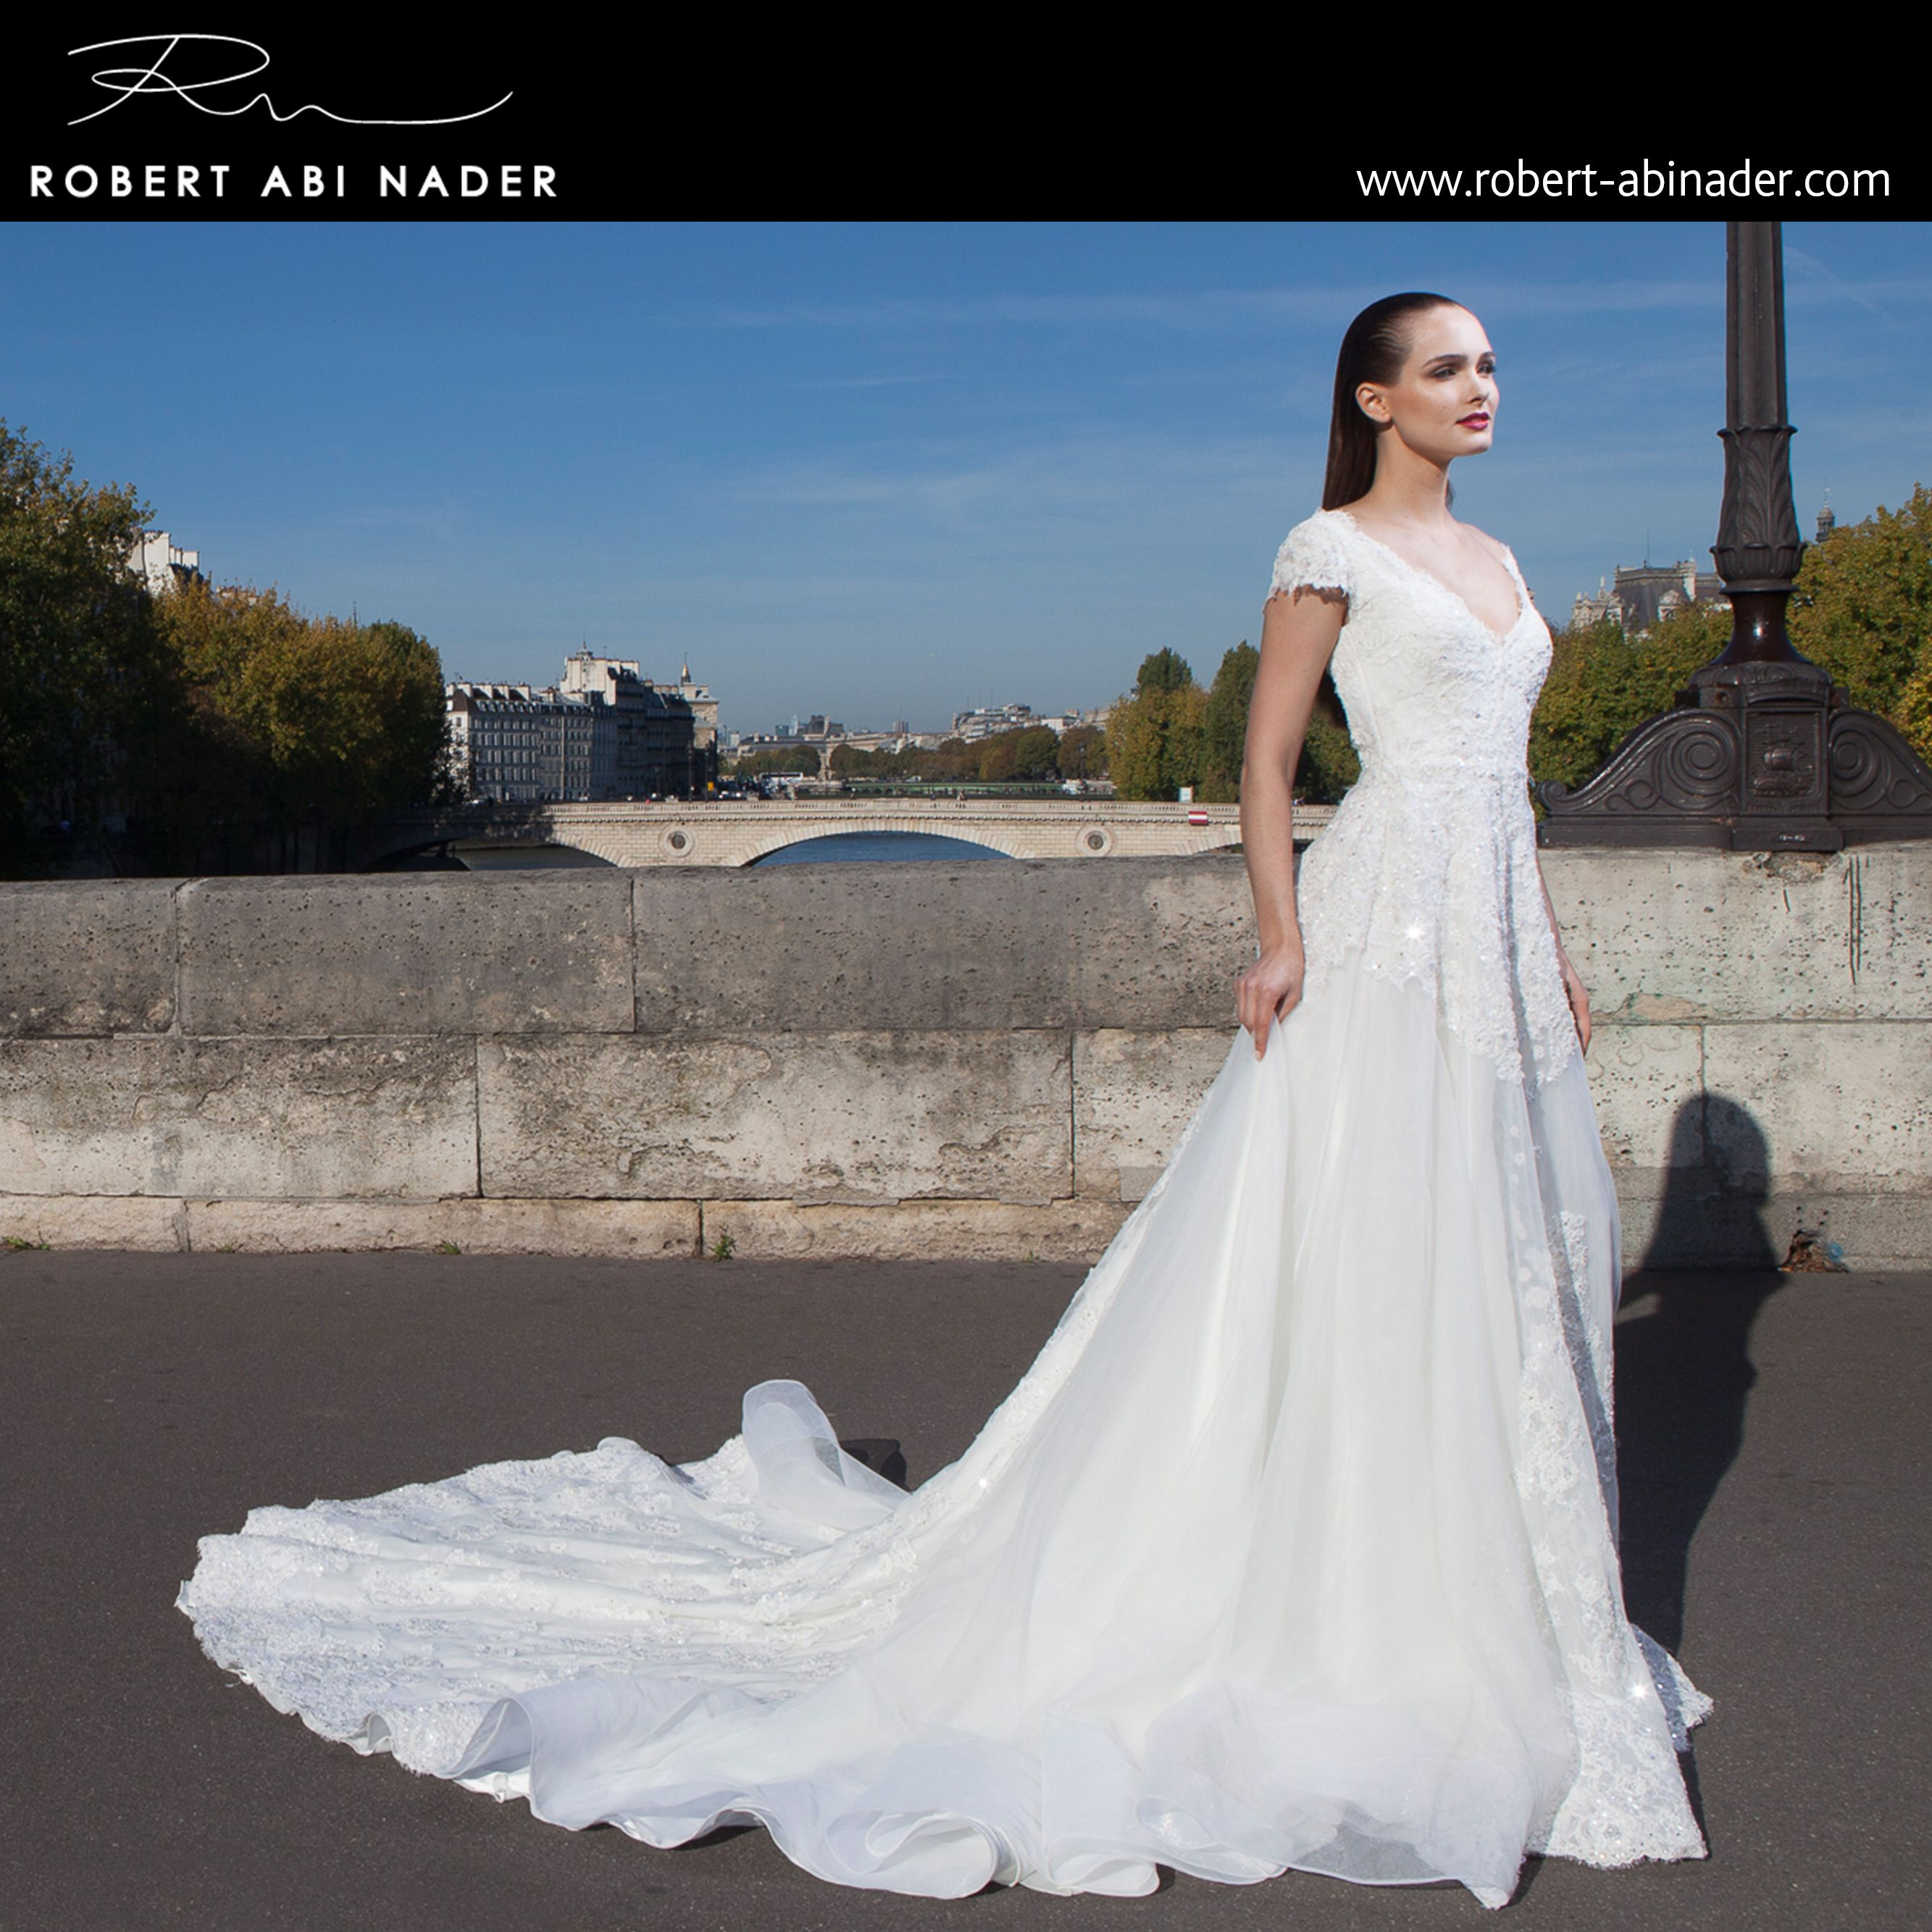 Robert Abi Nader - Bridal 2015 Long, fitted and flared dress in embroidered white lace. #robertabinader #long #flared #dress #fashion #lace #white #hair #lebanon #hairstylist #weddingphotography #weddingphotographer #princess #beauty #beautiful #instastyle #bridal #london #paris #wedding #robert #abinader #wedding